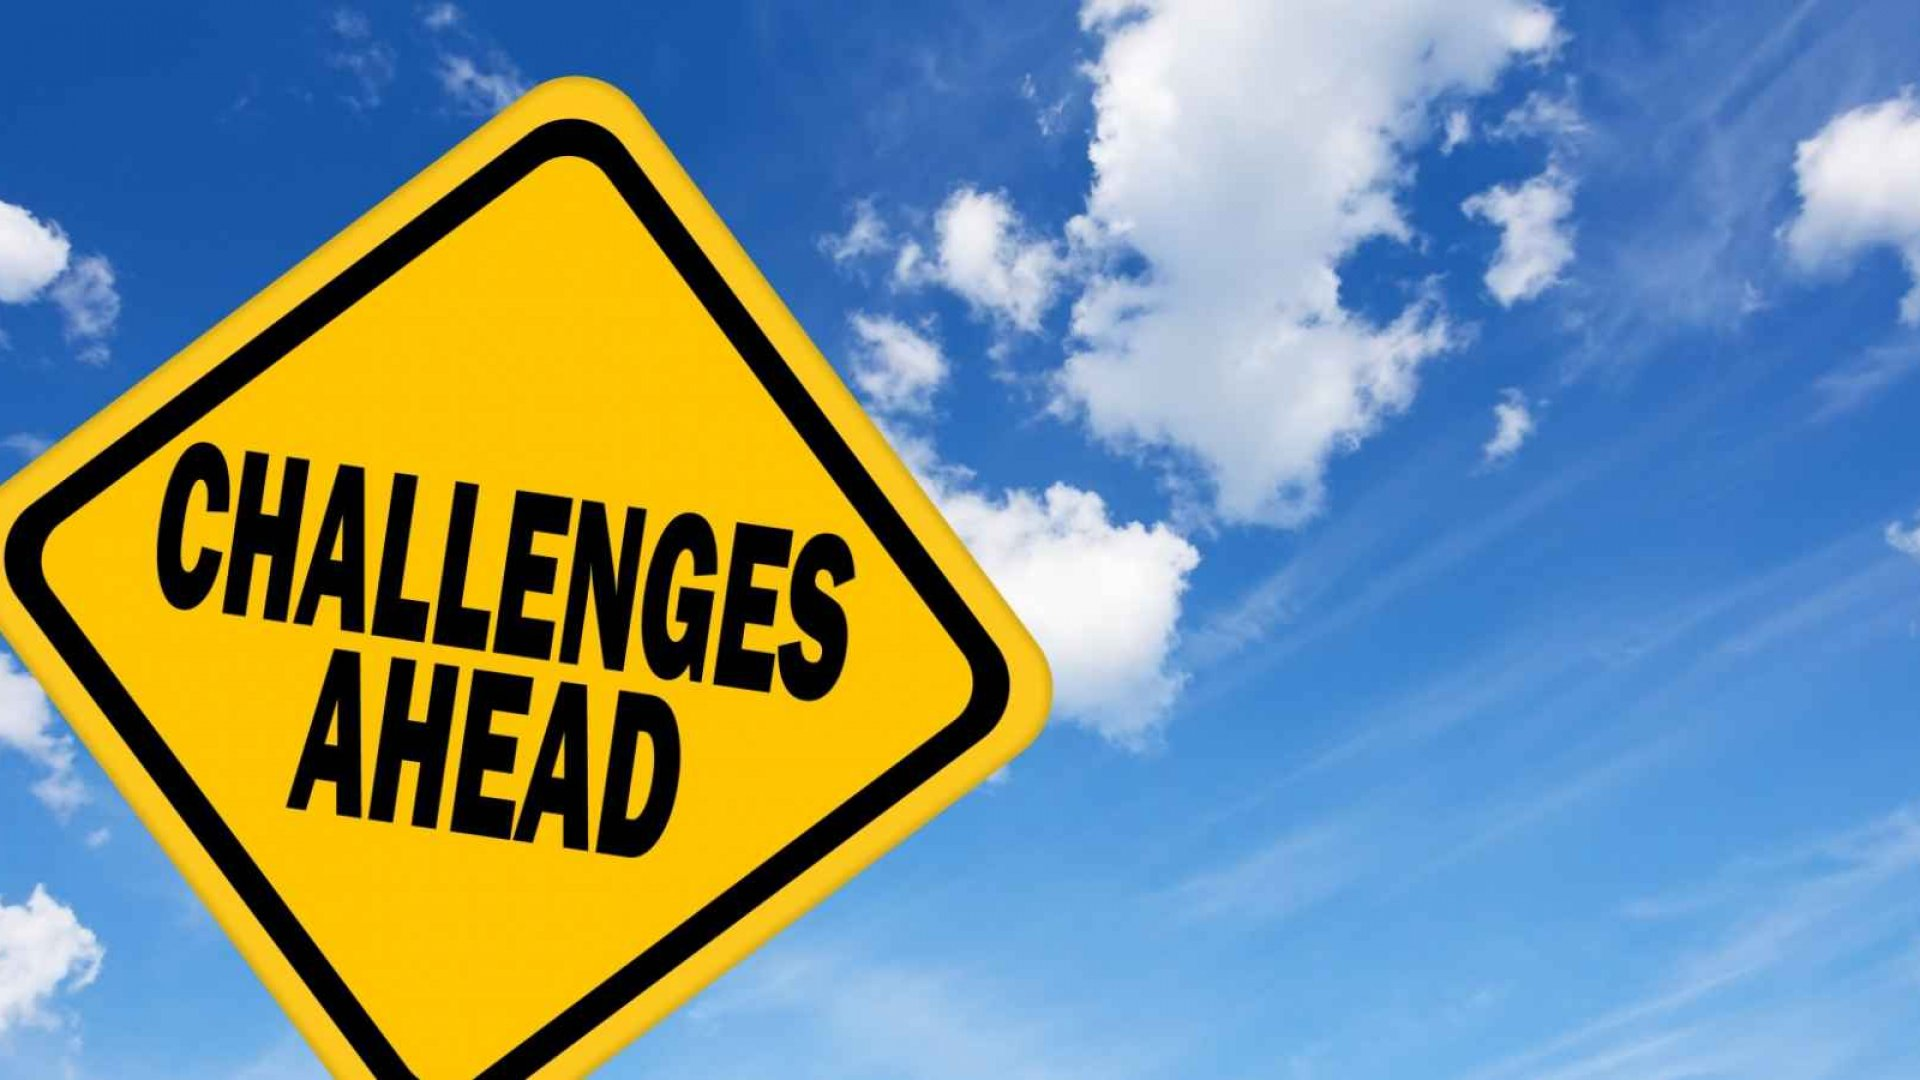 5 Biggest Entrepreneurial Challenges to Be Thankful For